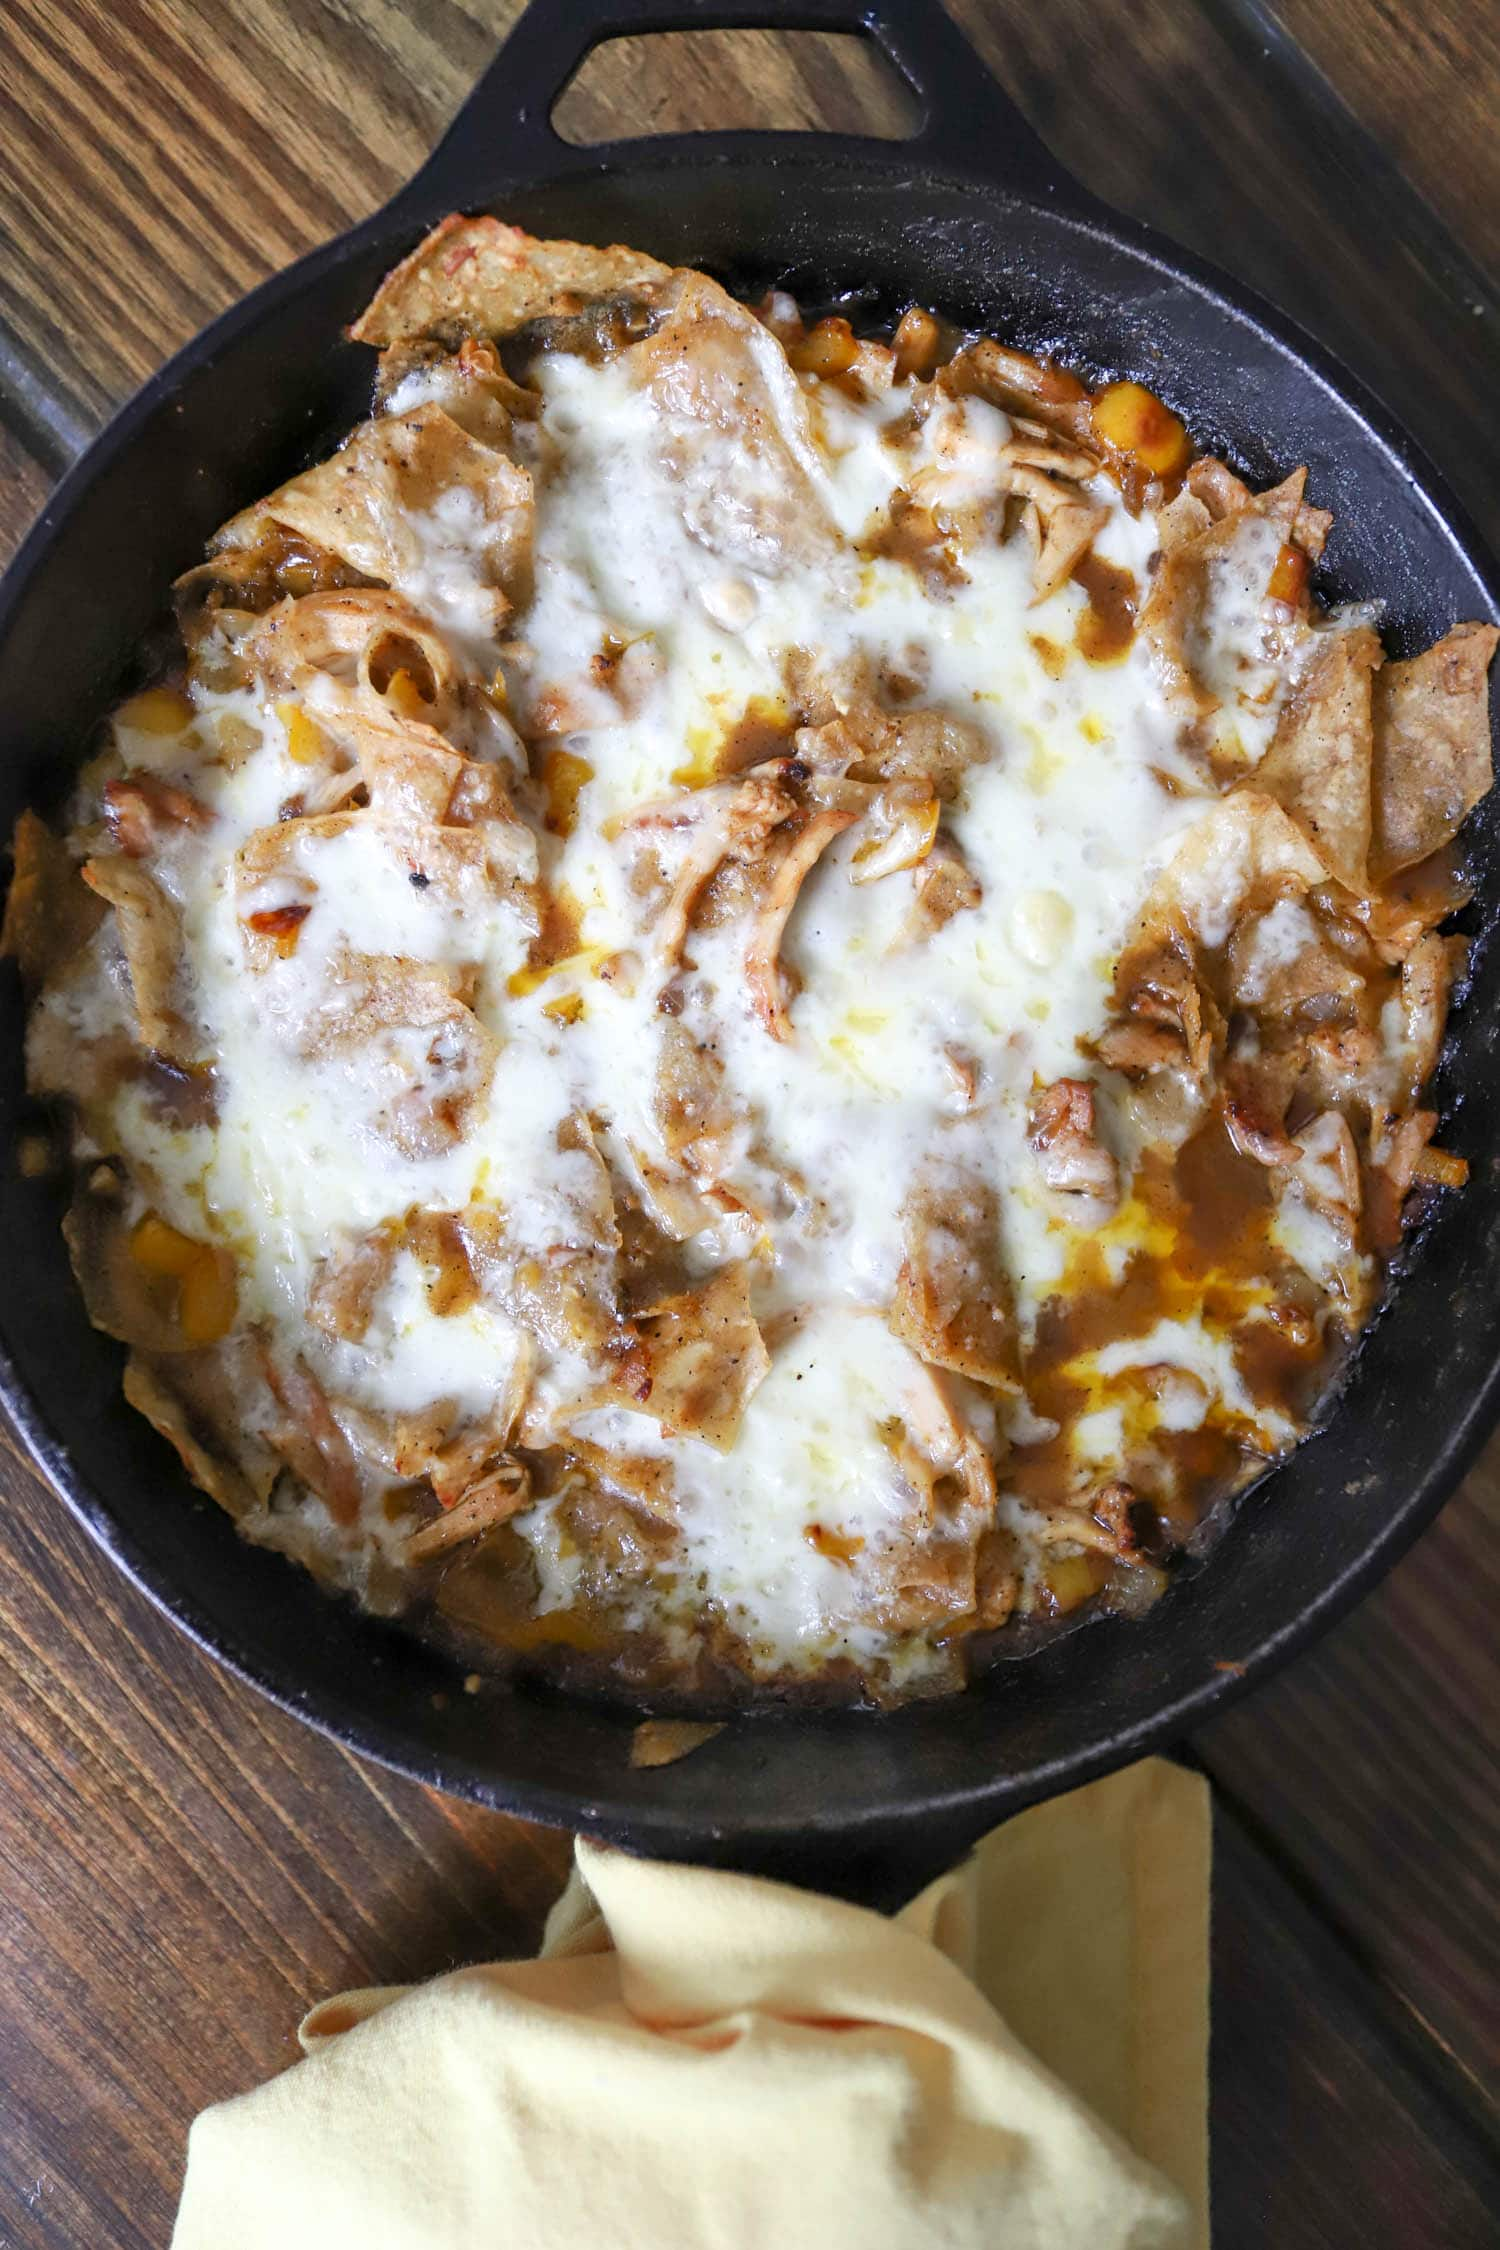 How to make chilaquiles verdes with chips, chicken, and green enchilada sauce. Funnyloveblog.com